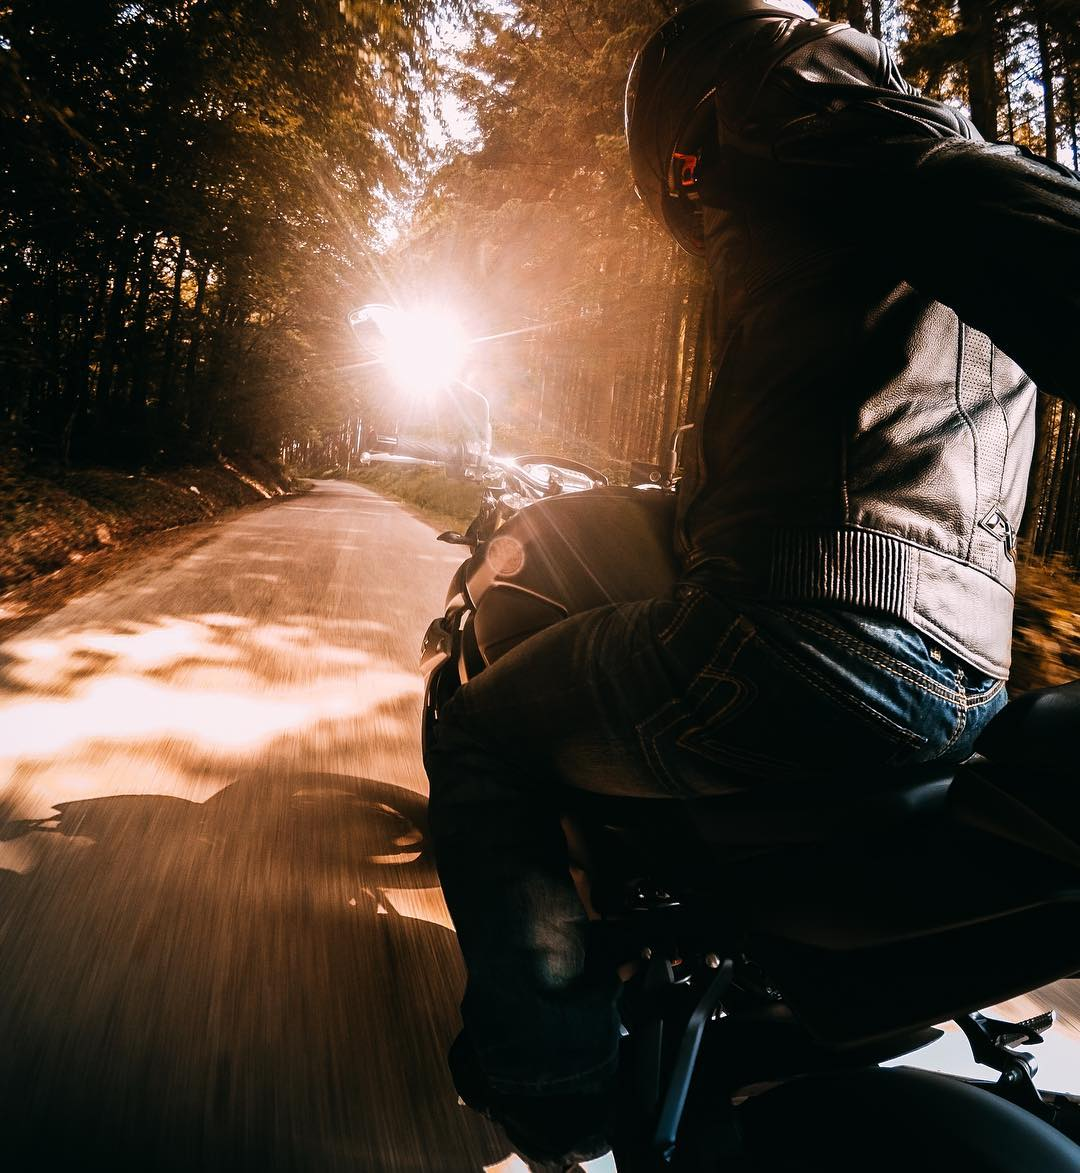 GoPro Featured Photographer: @desch_pictures  For me, happiness is rolling under the forest! The airflow of freshness is perfect. Both wheels is more than a passion, it is a real lifestyle! When I'm behind the handlebars, it's the only time I feel...